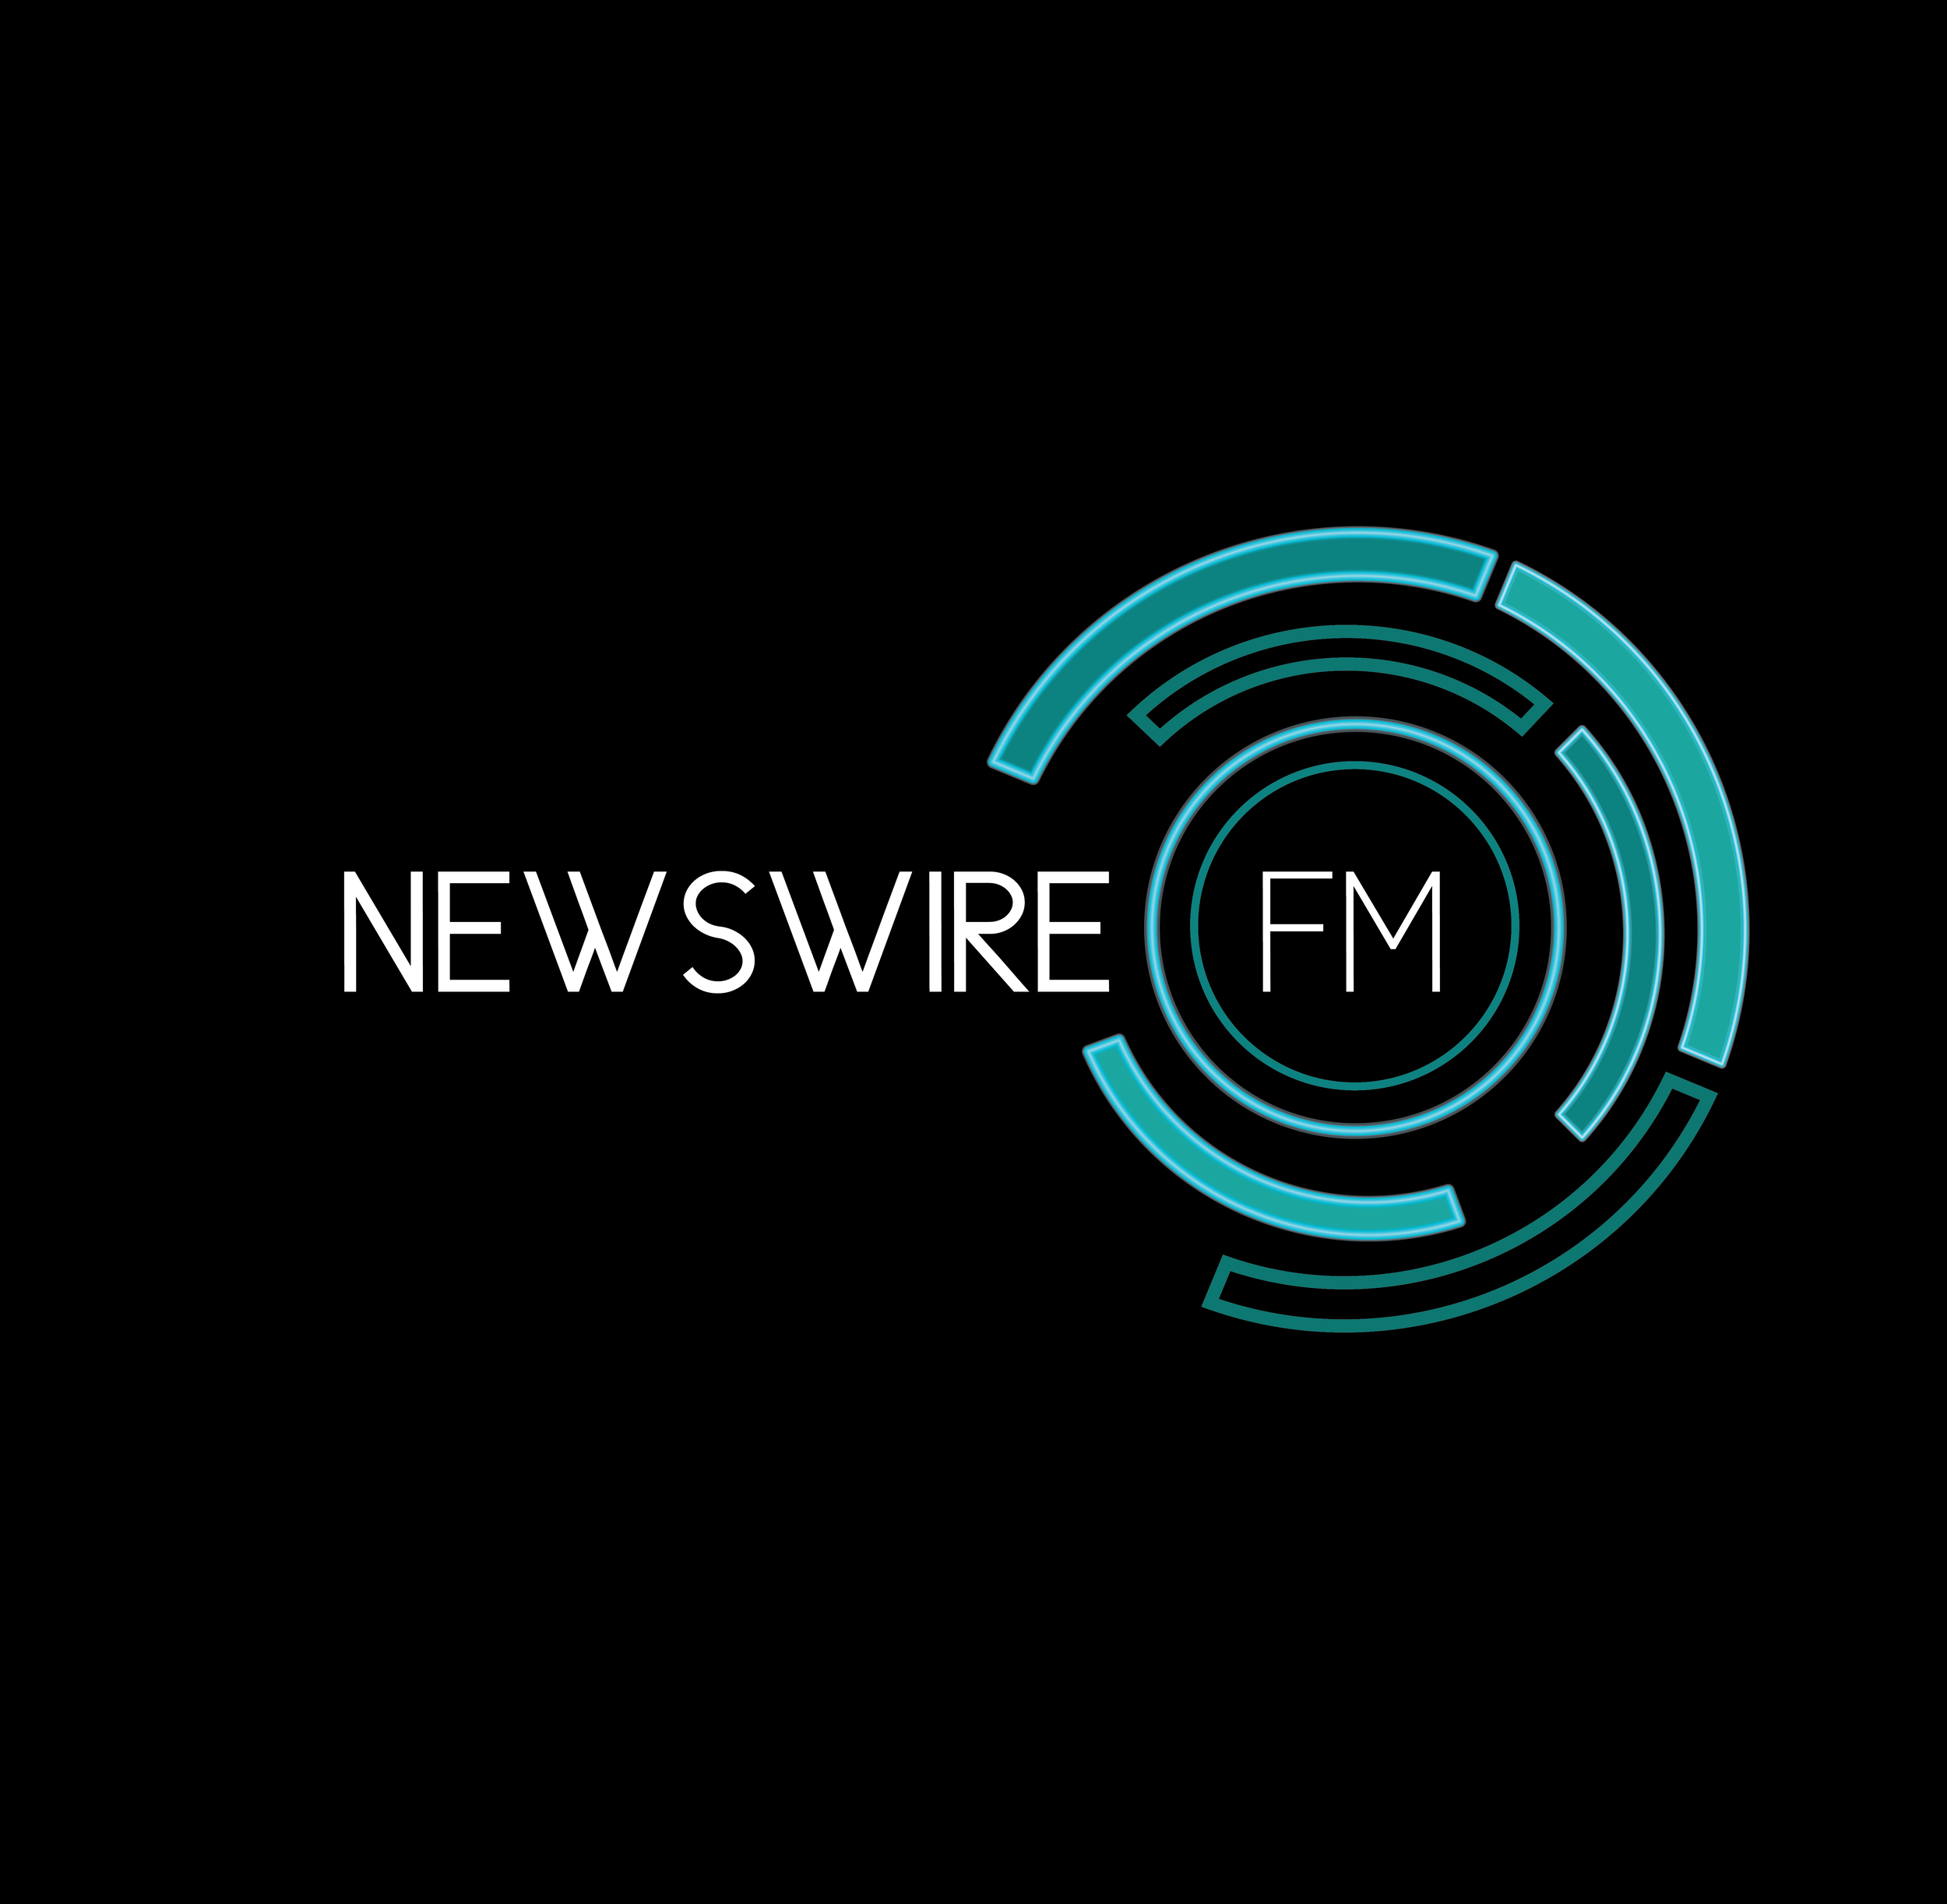 Newswire Fm - Newswire is DCUfm's flagship News and Current affairs show.It was the recipient of the DCU MPS Hybrid award in the News and Current affairs category in 2019 and was nominated for a National Student Media Award.It deals with all of the news and issues that are affecting students, both here on campus and beyond.We talk to the experts to find the answers to your pressing issues, questions and concerns. So if you have a nose for news or simply enjoy asking those in power the tough questions then join us and be a part of DCUfm's Newswire.